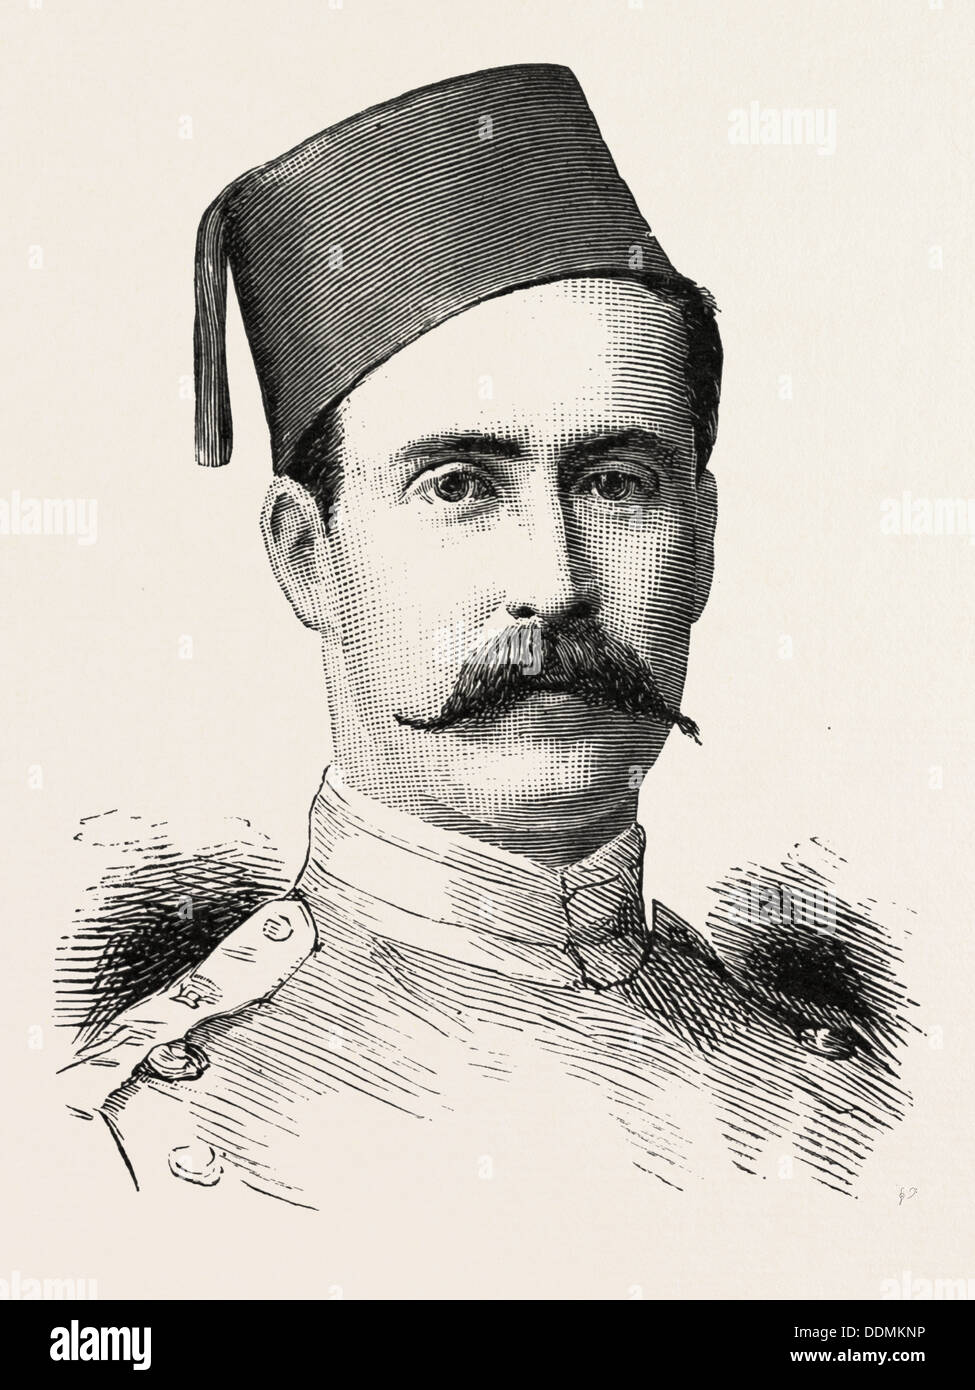 COLONEL V. H. TAPP 3rd Battalion, Egyptian Army, EGYPT, 1888 engraving - Stock Image